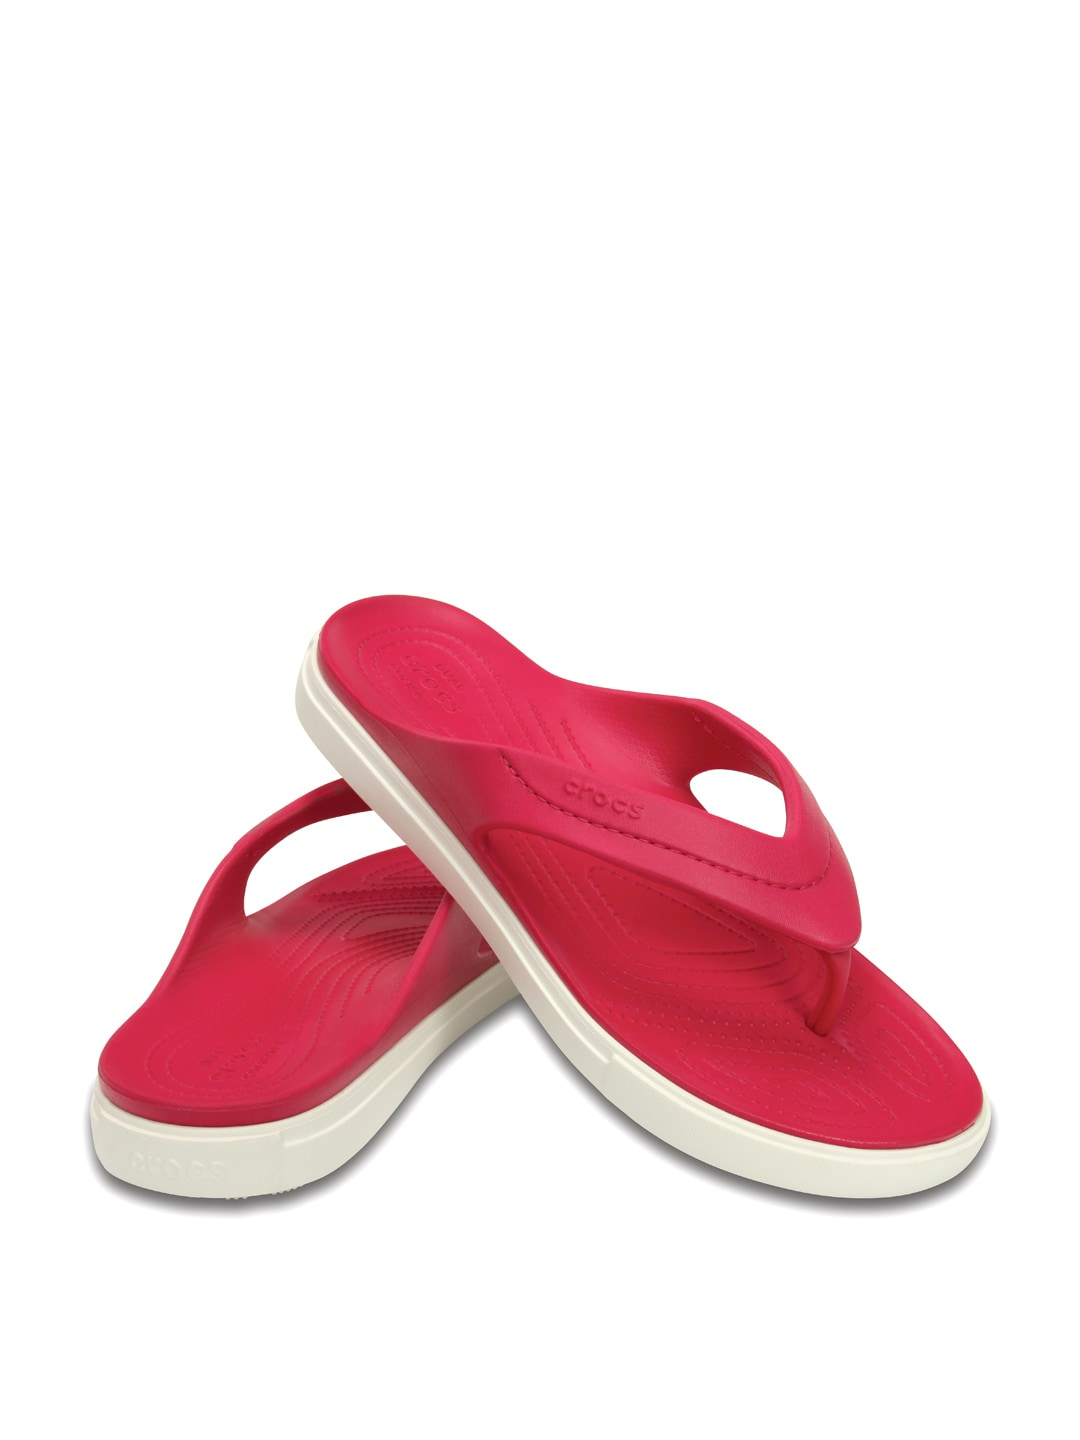 488e150cab94a Crocs 202831-604 Women Pink Flip Flops - Best Price in India ...